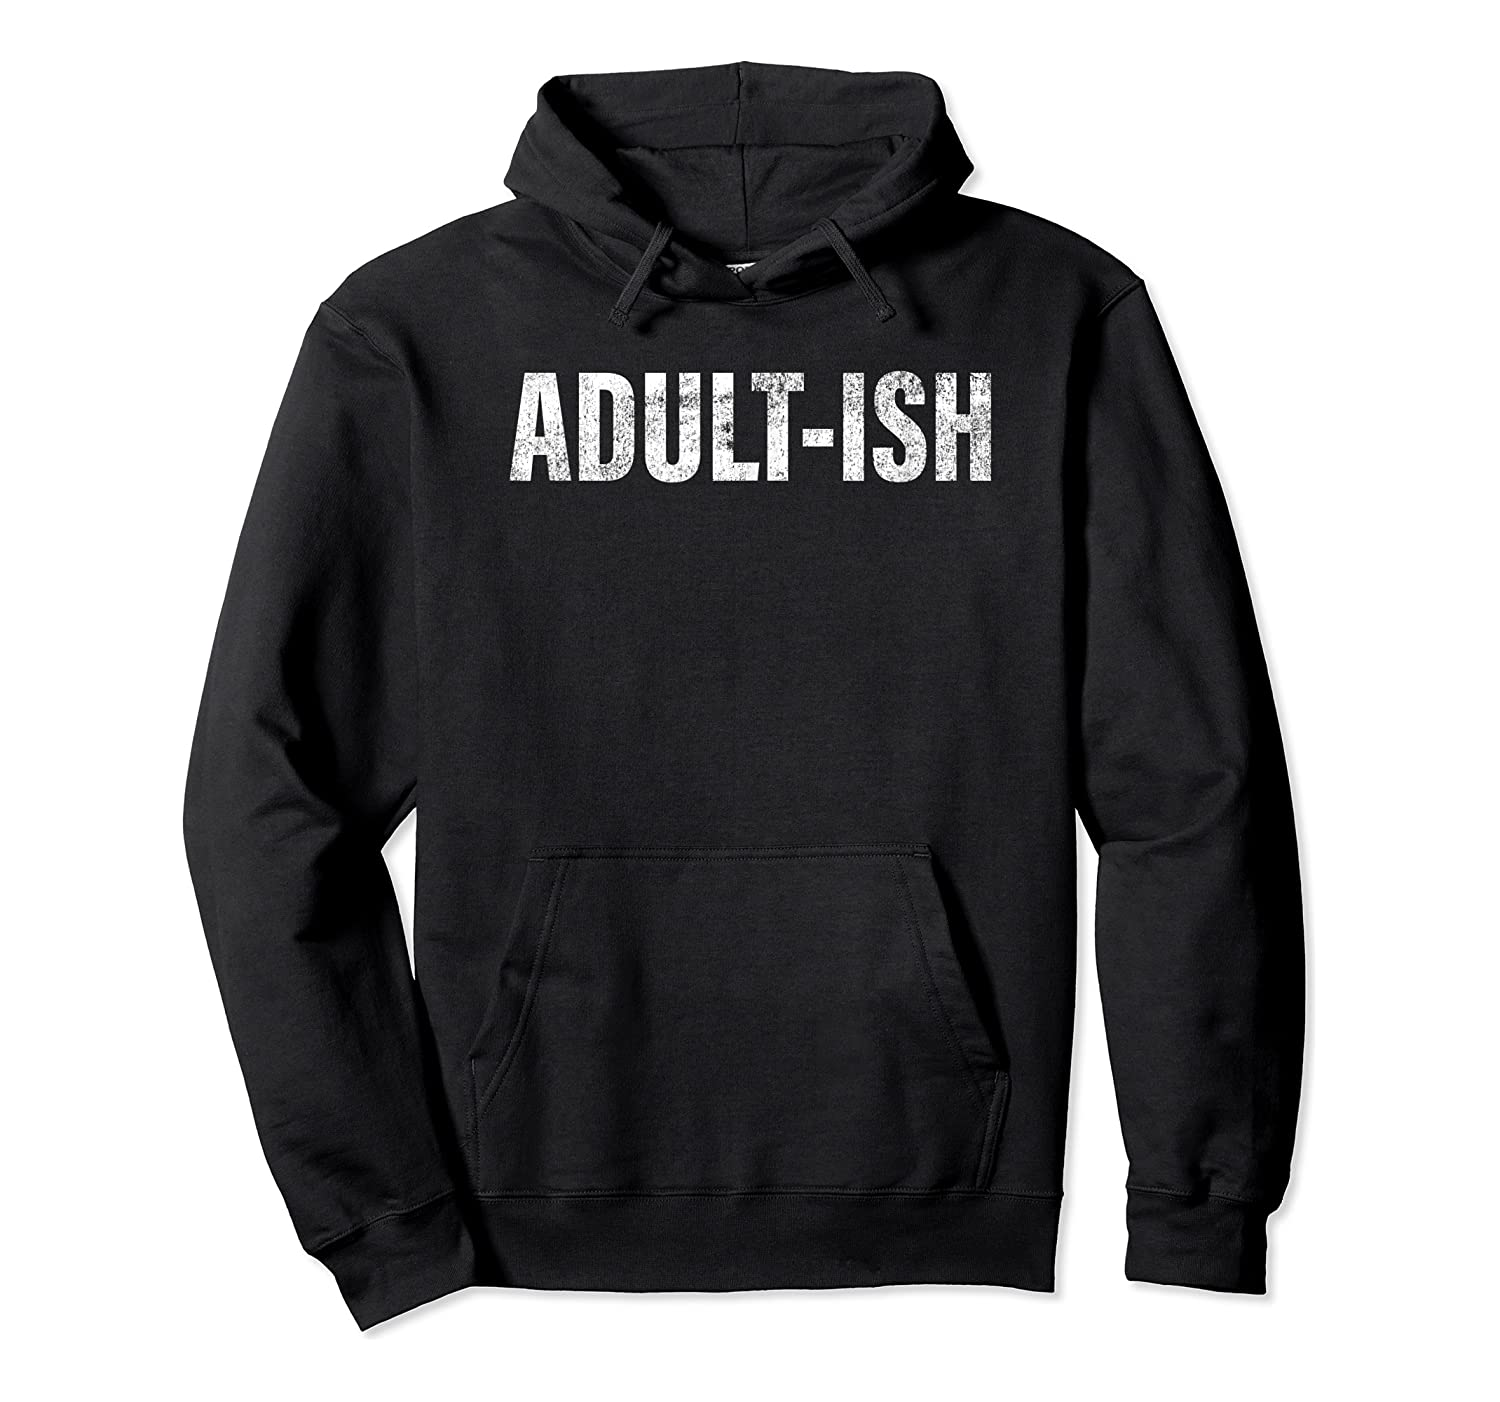 Adult Ish Funny Adulting 18 Years Old Birthday Shirts Unisex Pullover Hoodie